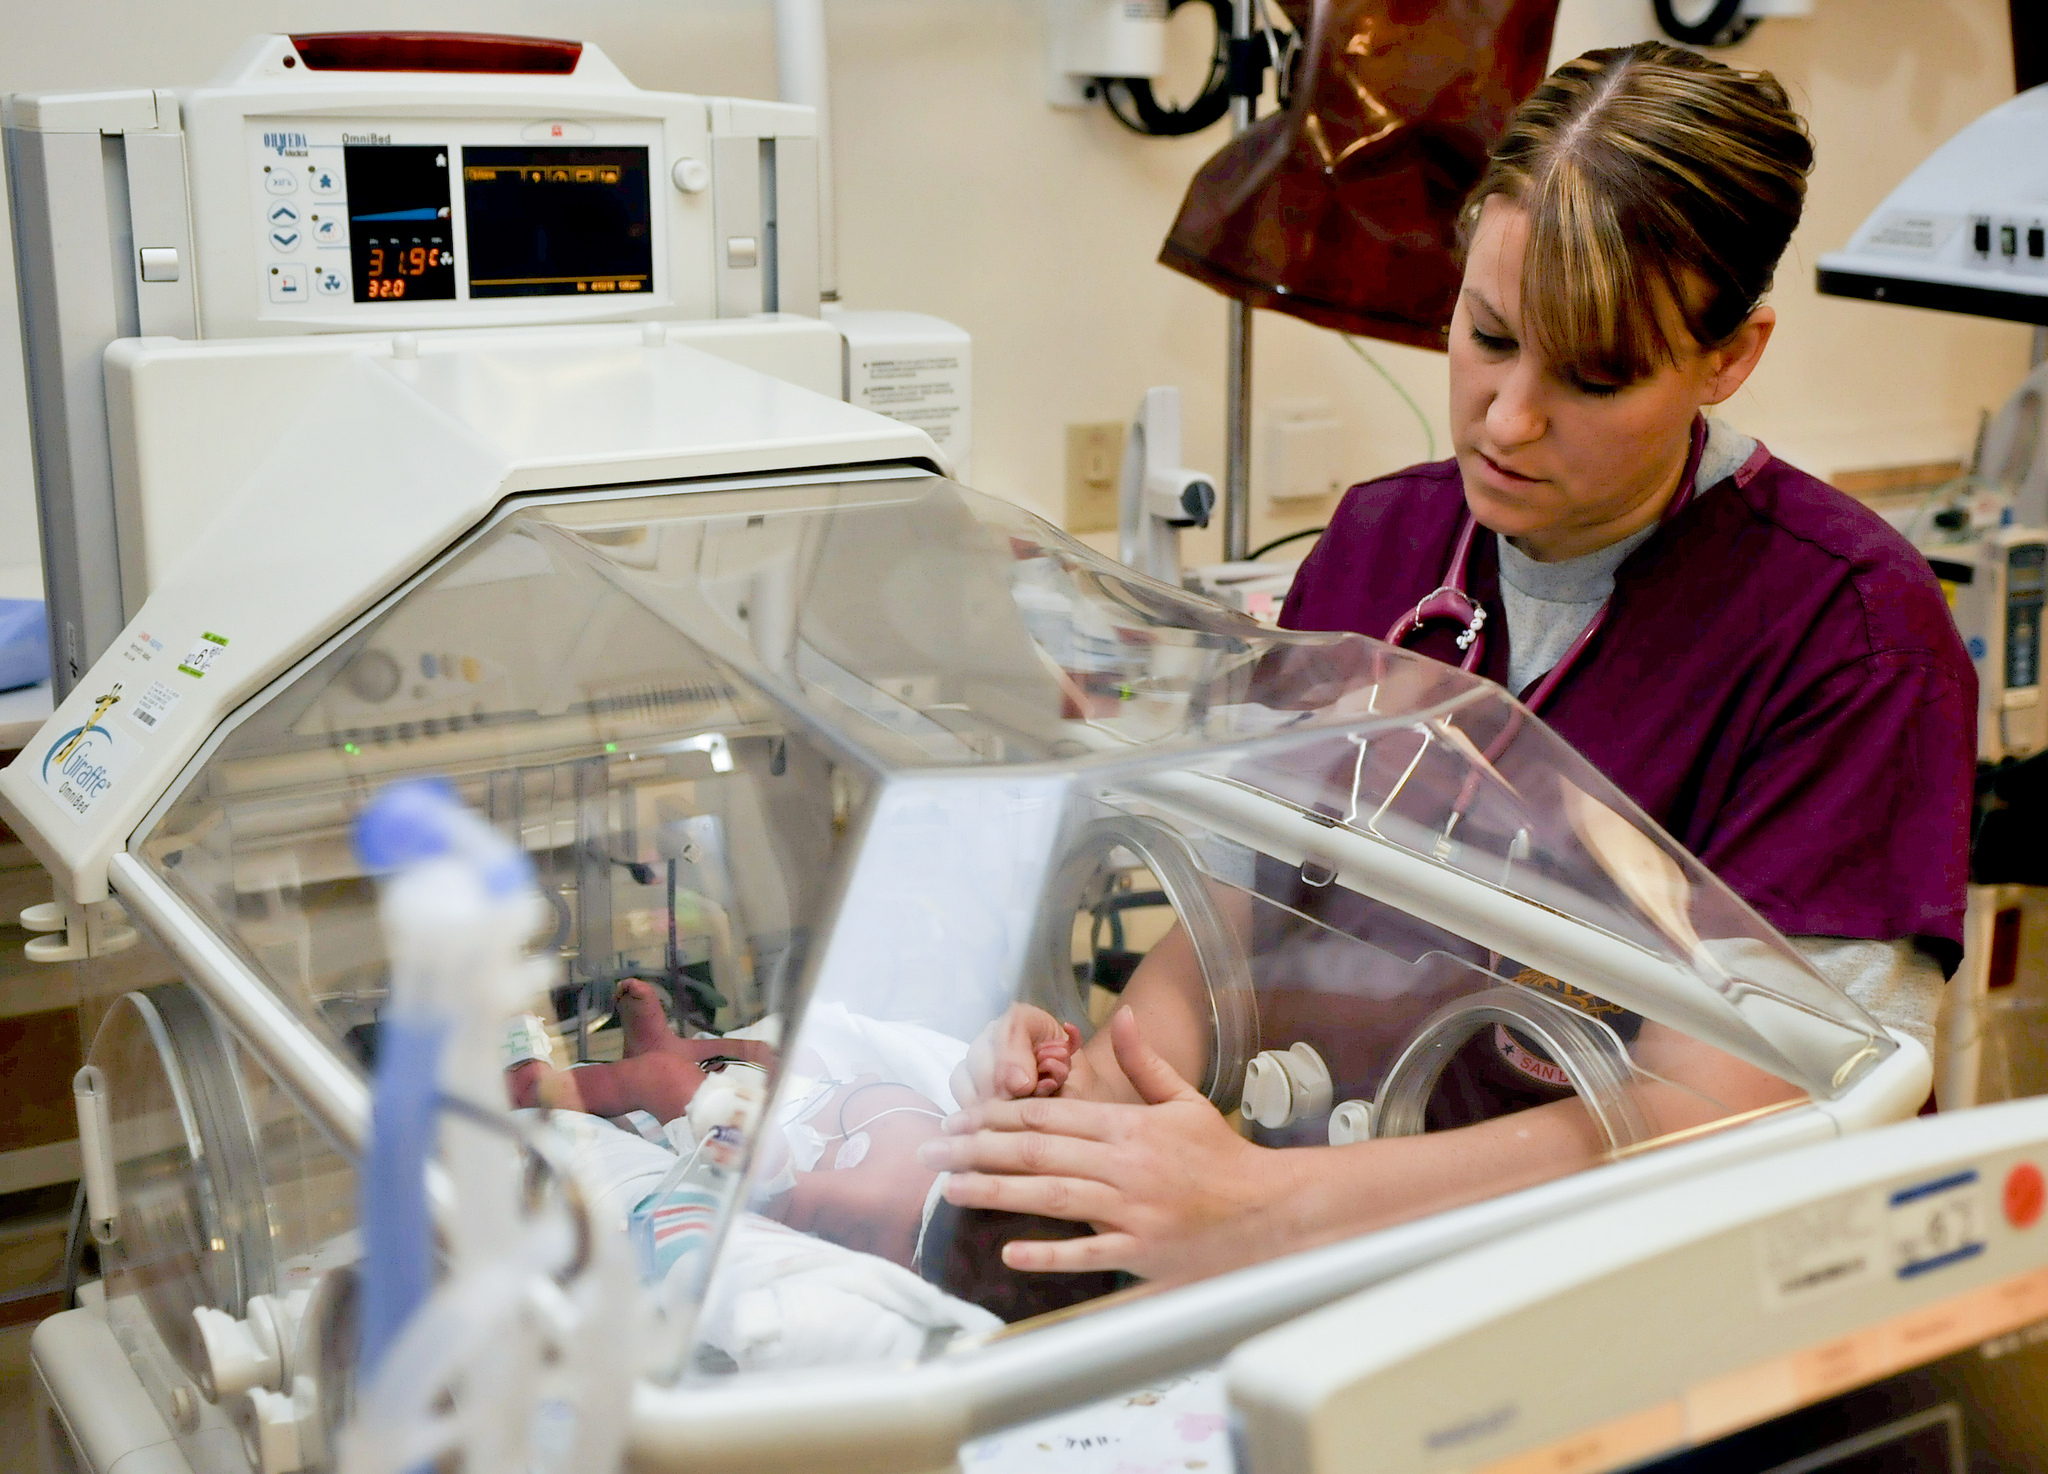 Nurse and Baby Pic from flickr